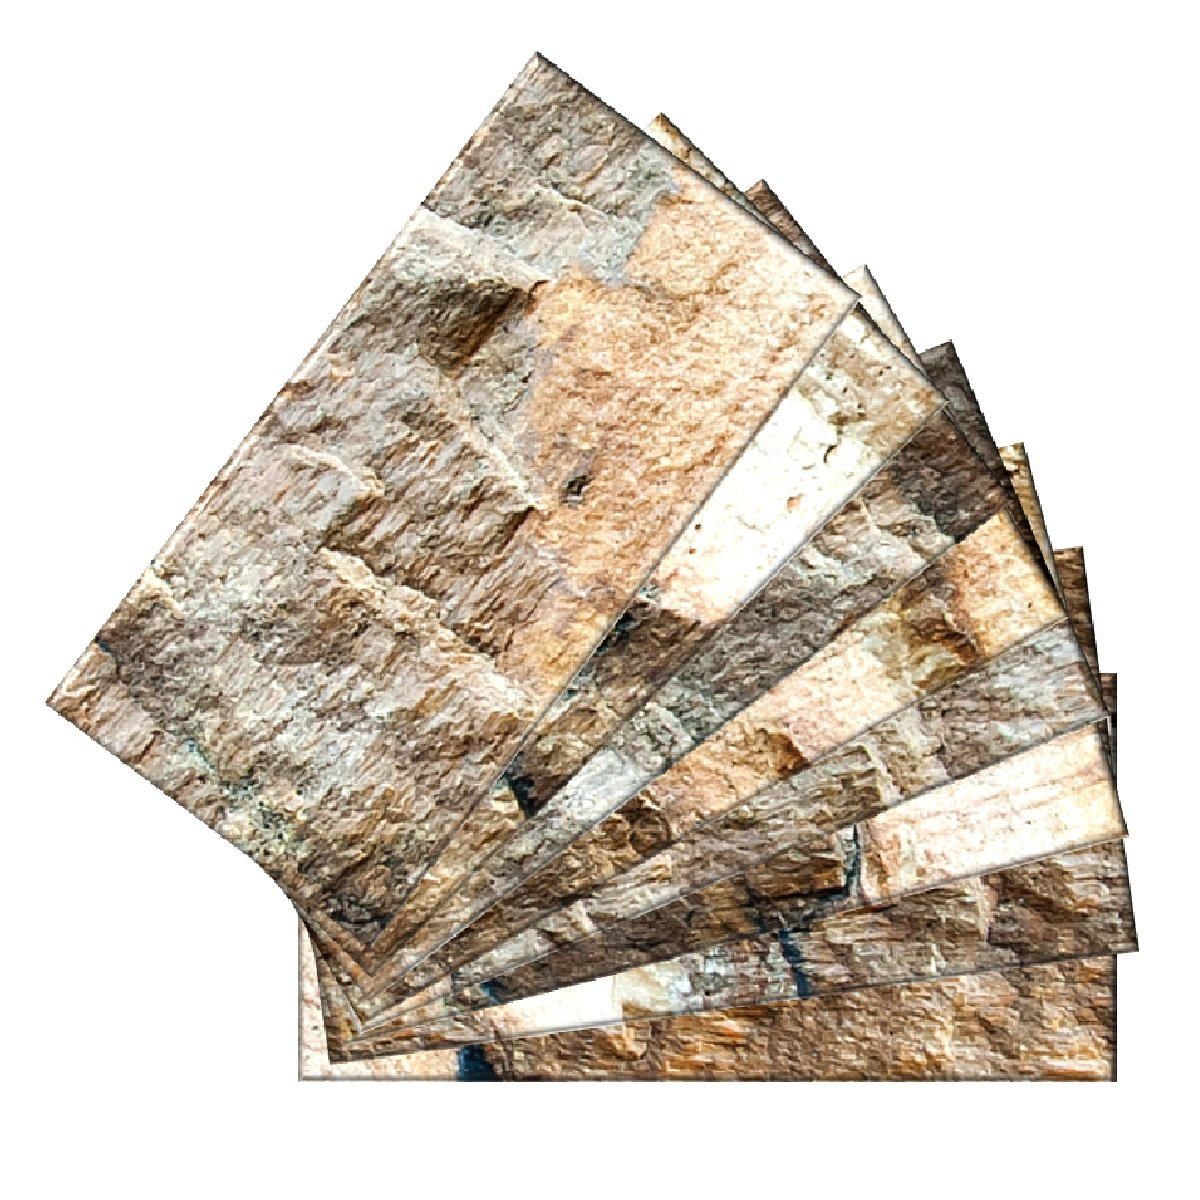 SkinnyTile 4403 Peel and Stick Rock Surface Shades Glass Wall Tile, 6'' x 3'', Brown/Tan